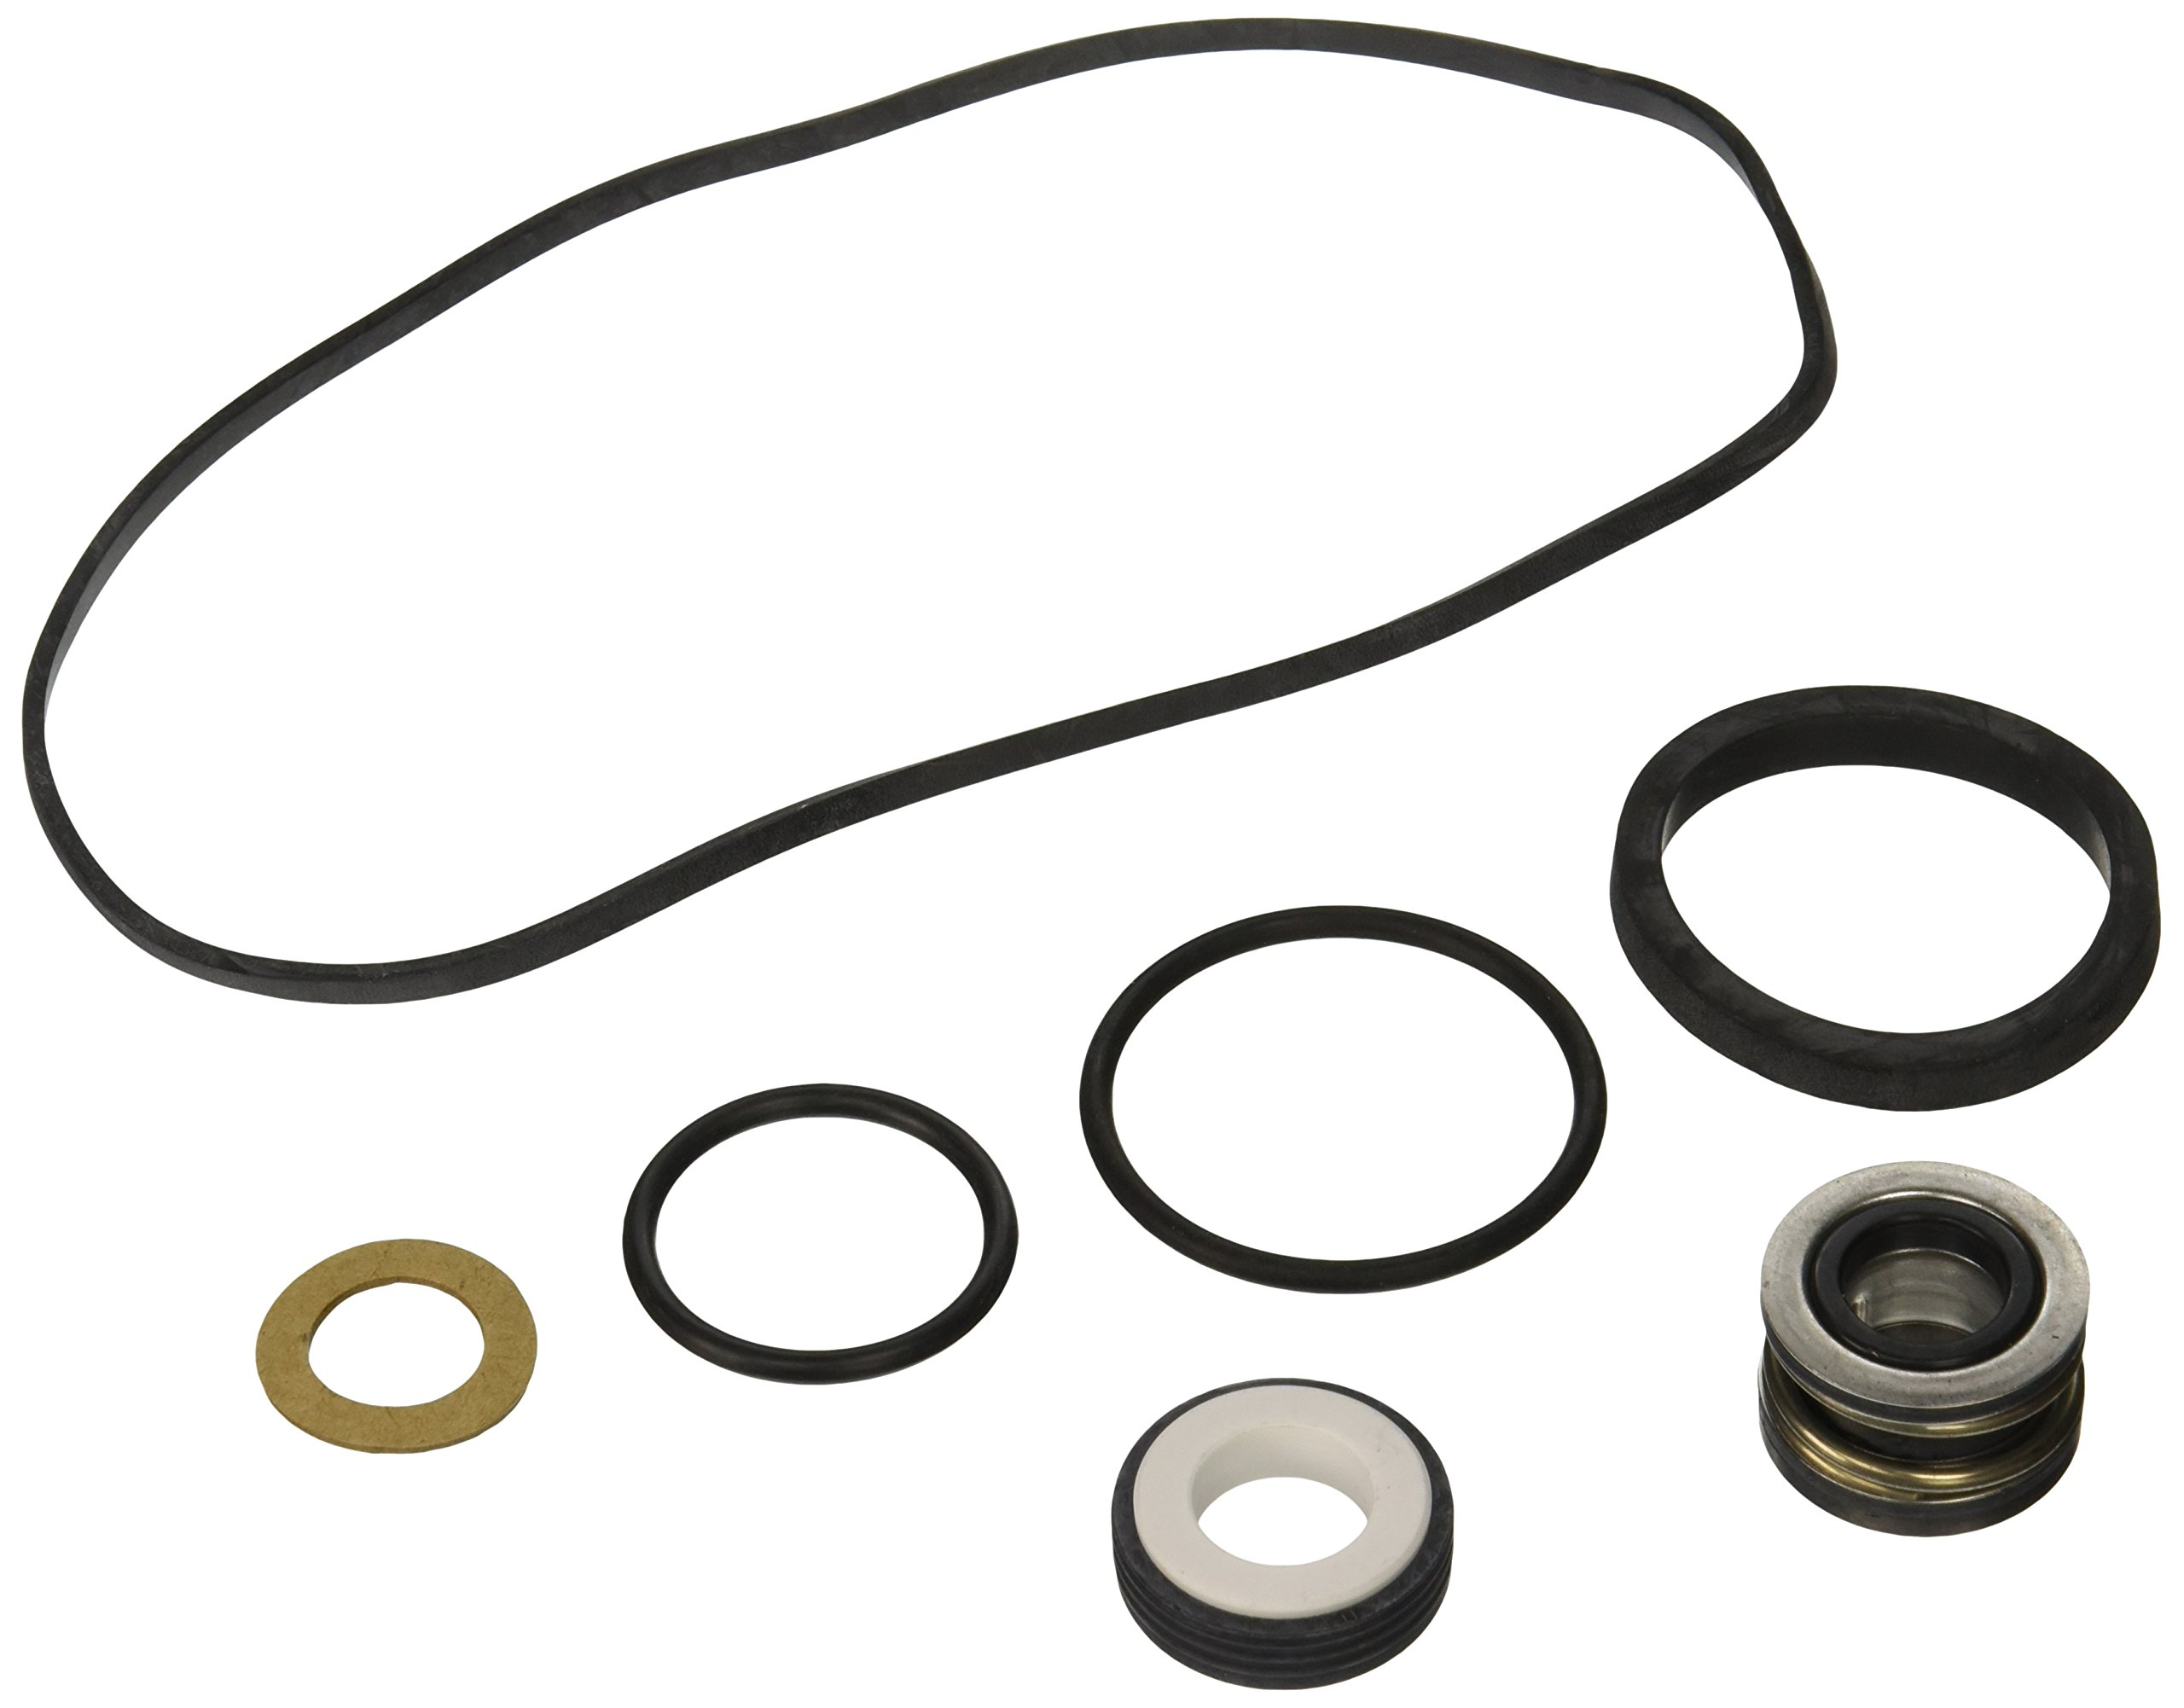 Wayne 56874-002 Jet Pump Repair Kit